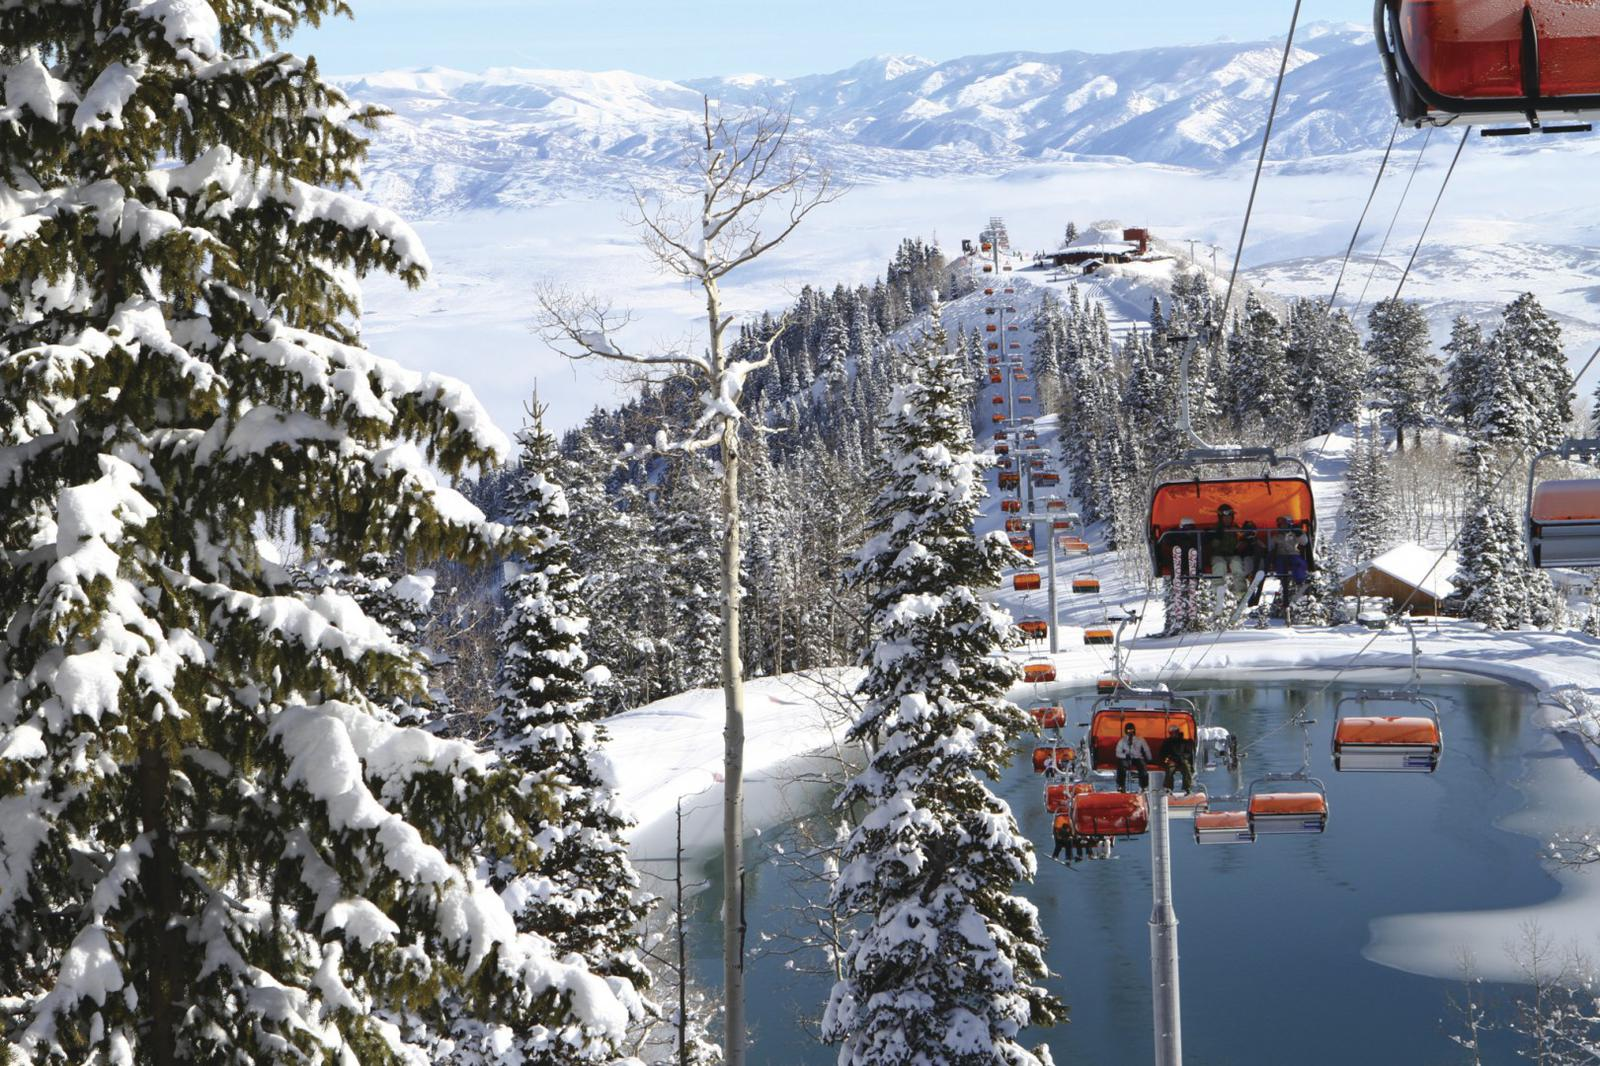 Heated Chairlifts will keep you cozy in the Canyons